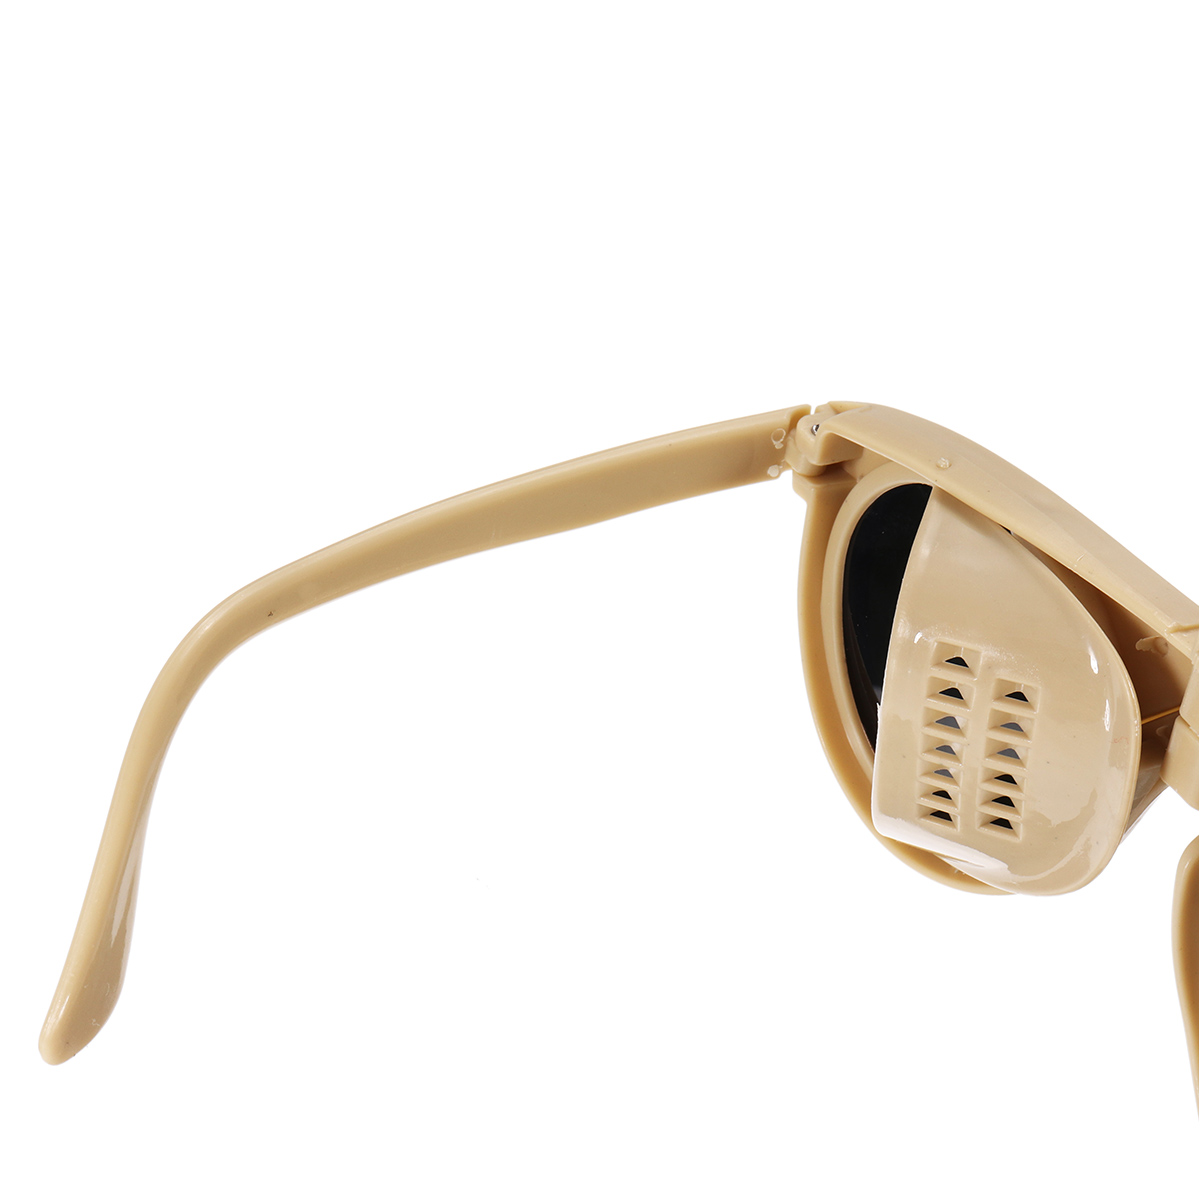 Safurance Safety Goggles Against Wind t Anti-Dust Impact Welding Glasses Workplace Safety Eye Protection